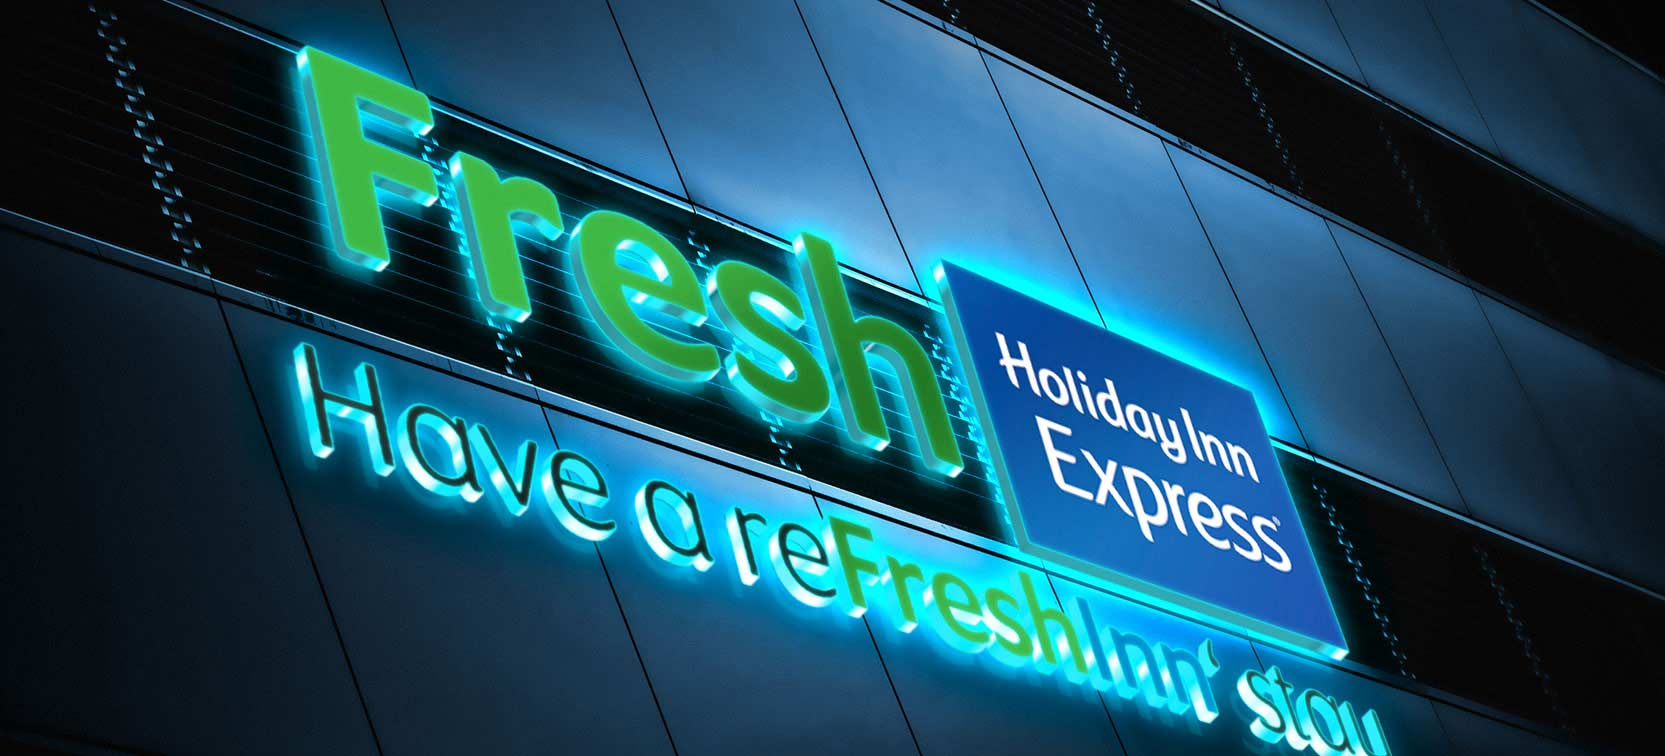 Holiday Inn Express, IHG Group